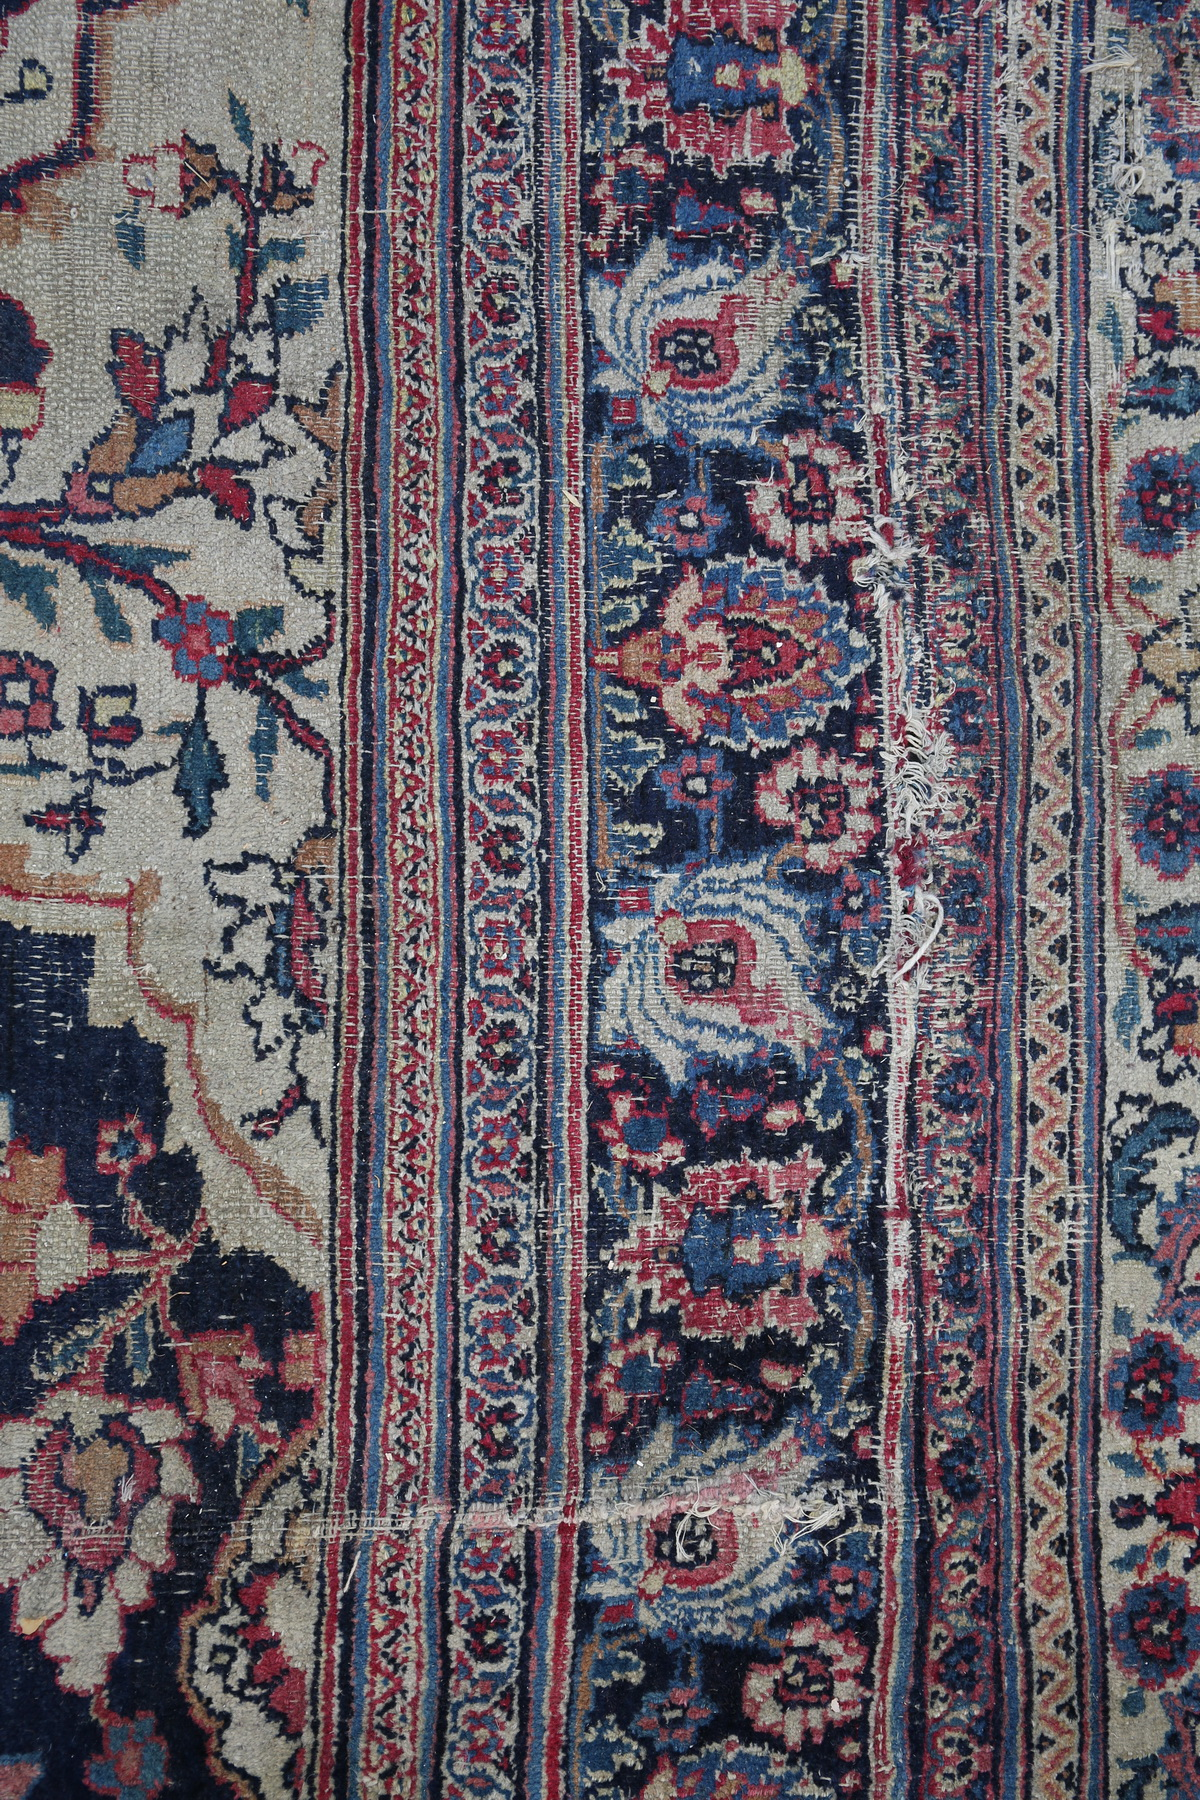 Important IRAN carpet early 20th